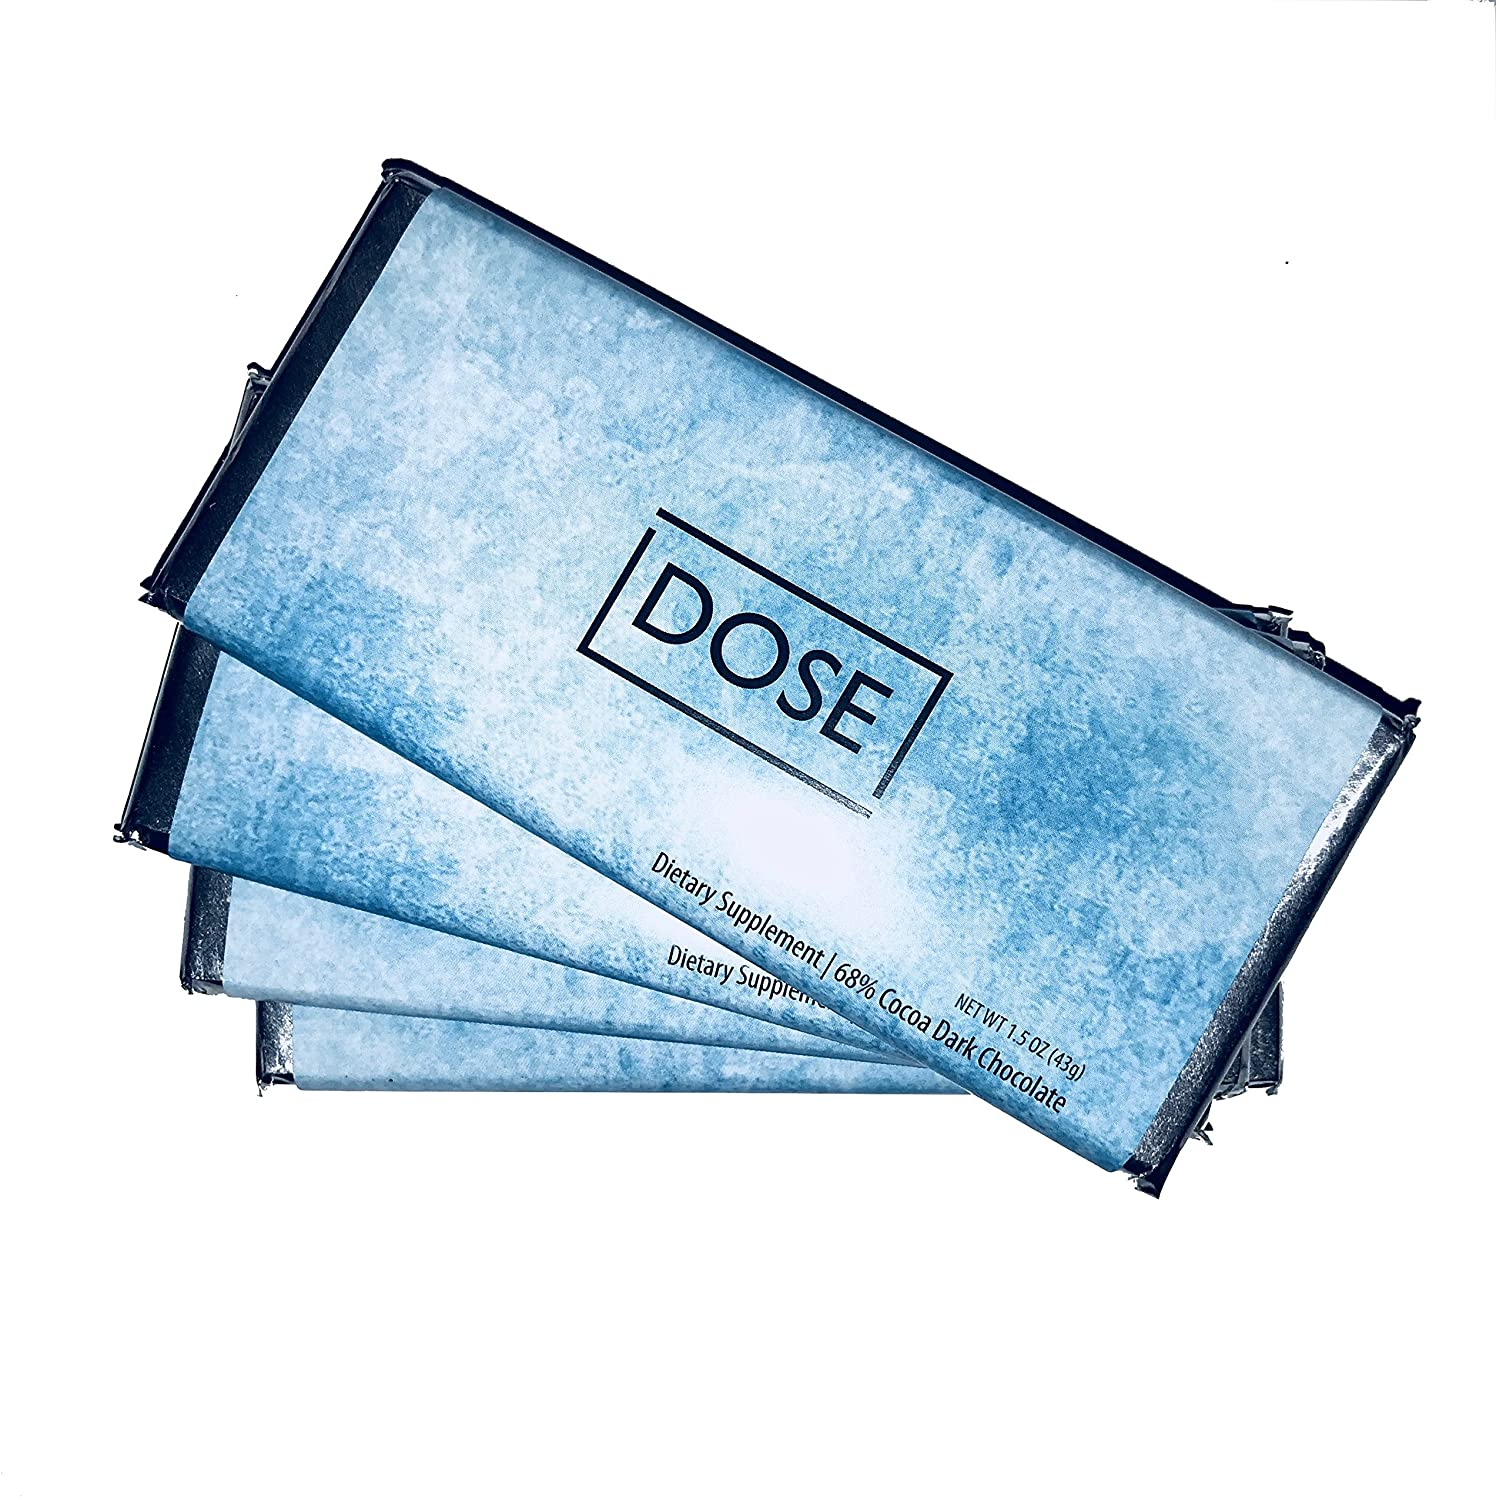 Dose Chocolate: Made with D-Mannose (8 Week Supply) - 8 Bars